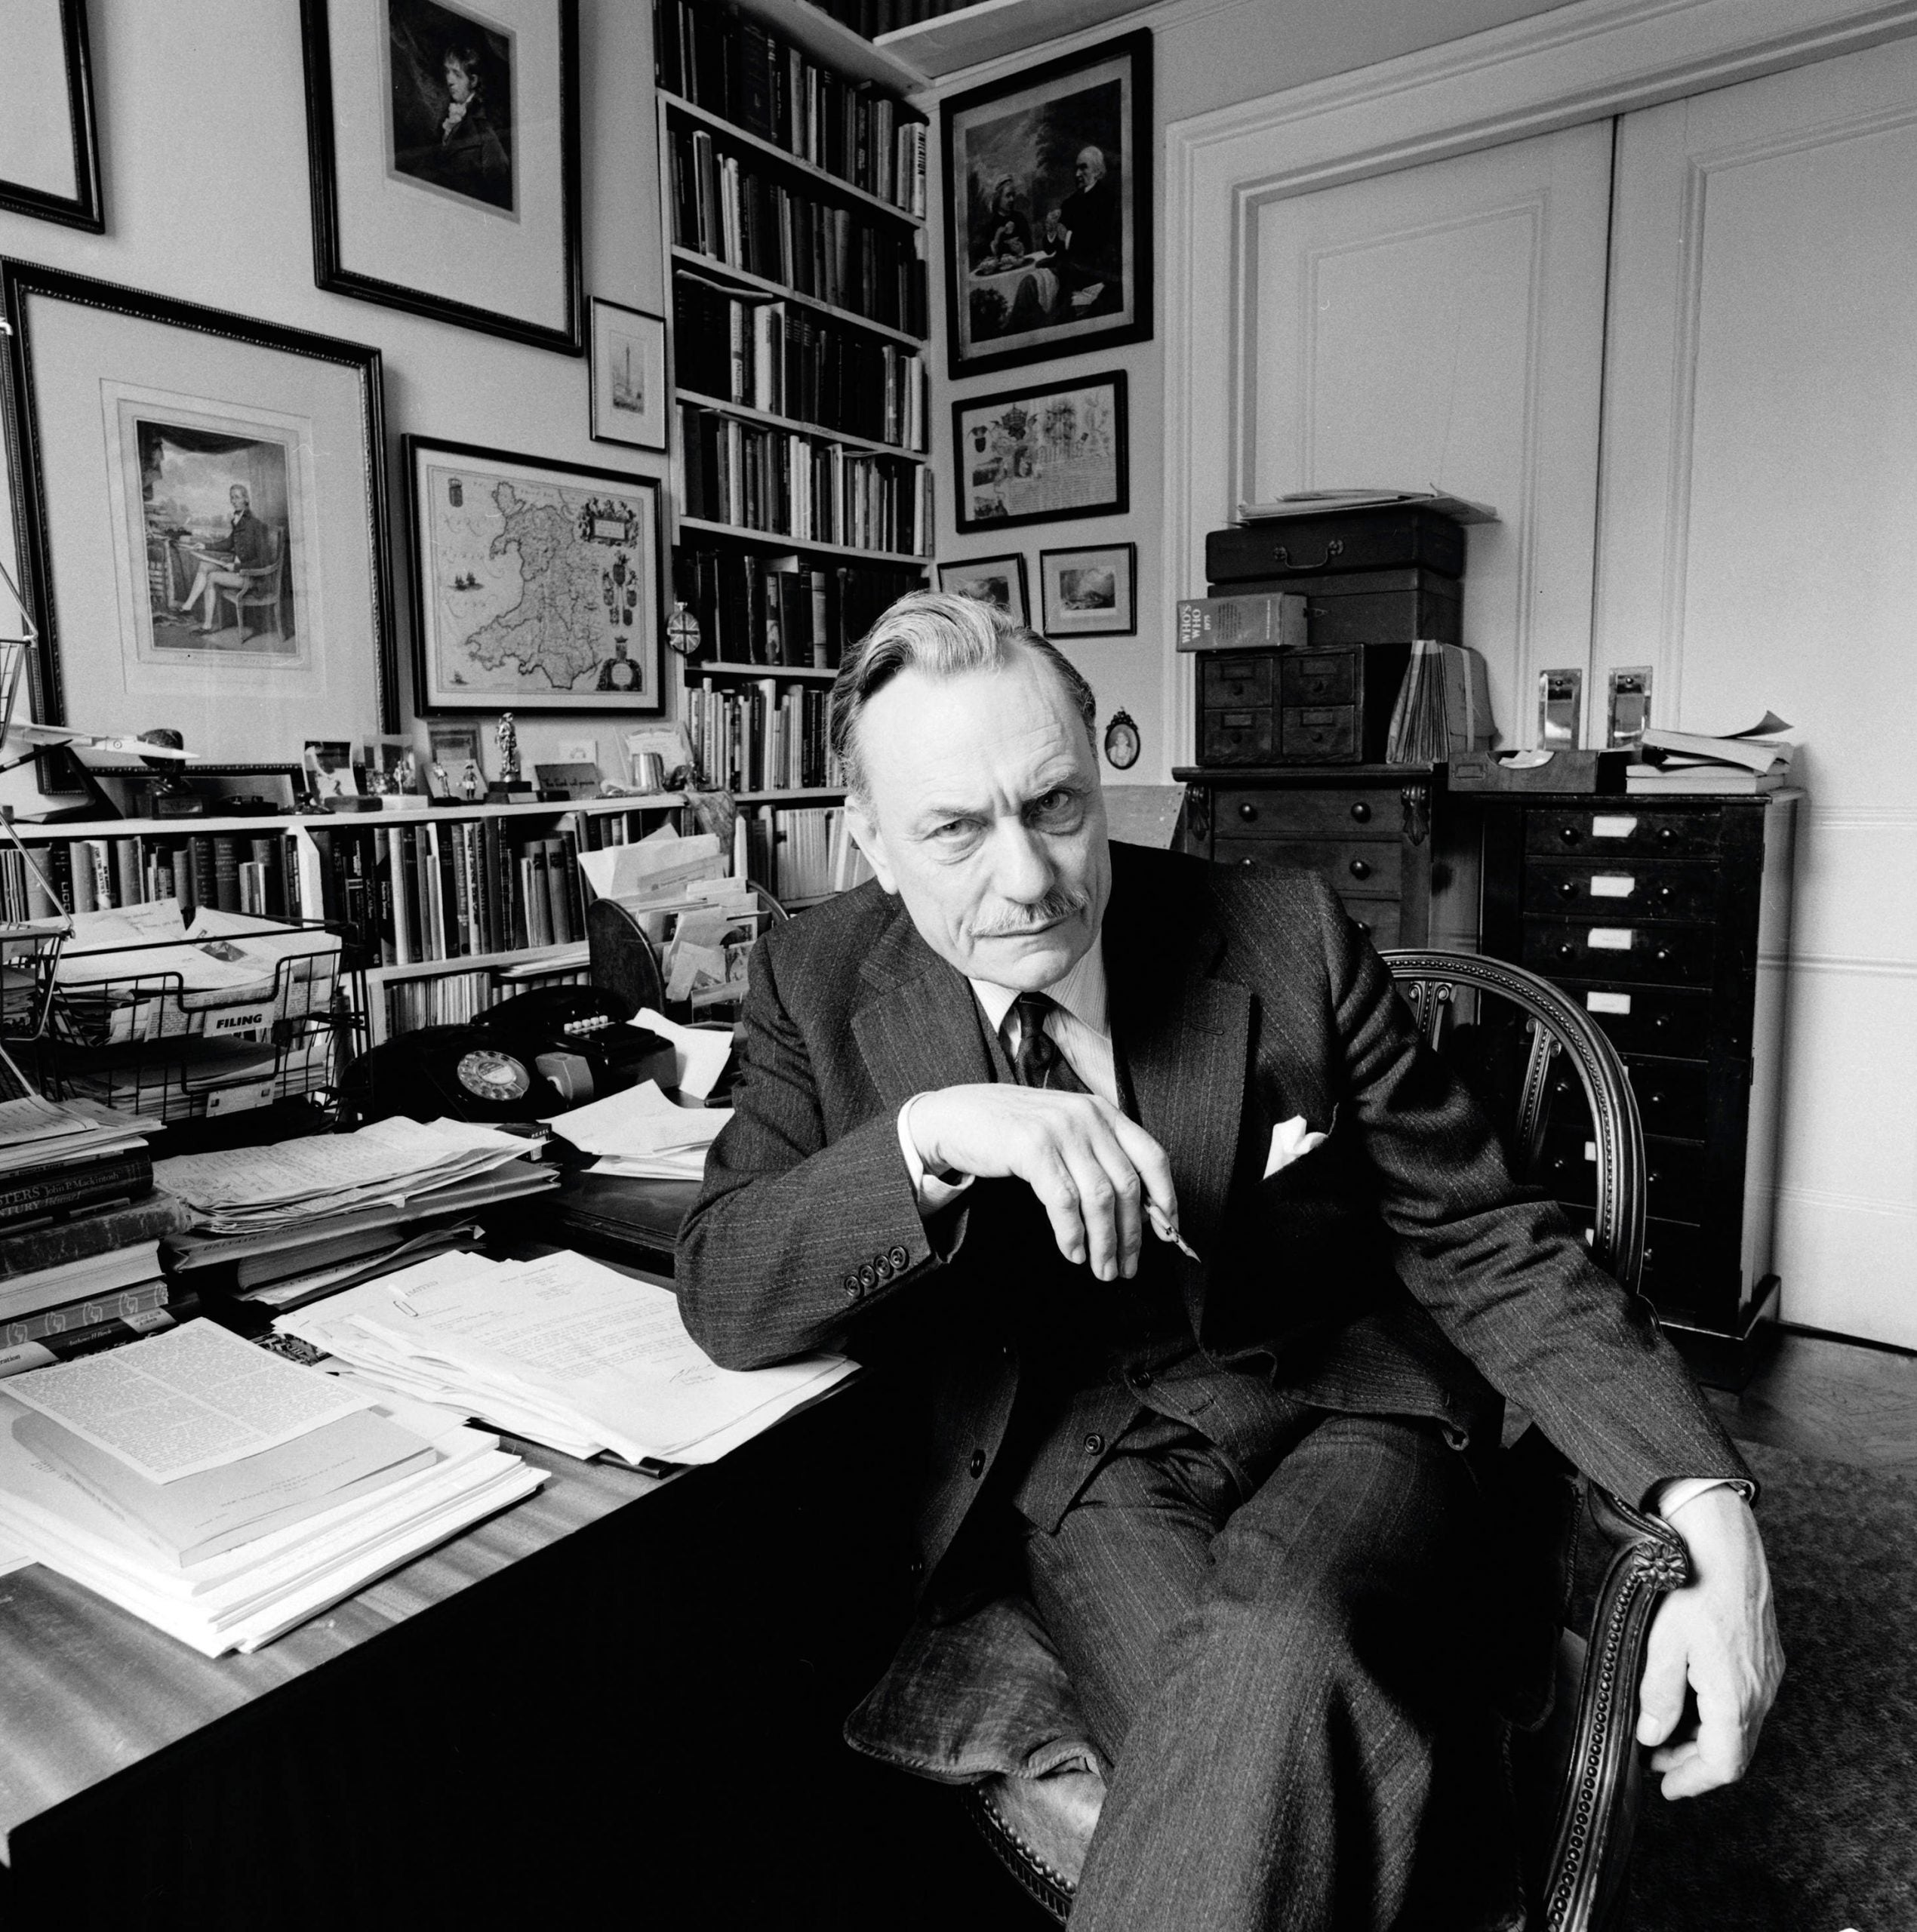 Will post-Brexit Britain overcome or fall further upon Enoch Powell's troubling legacy?